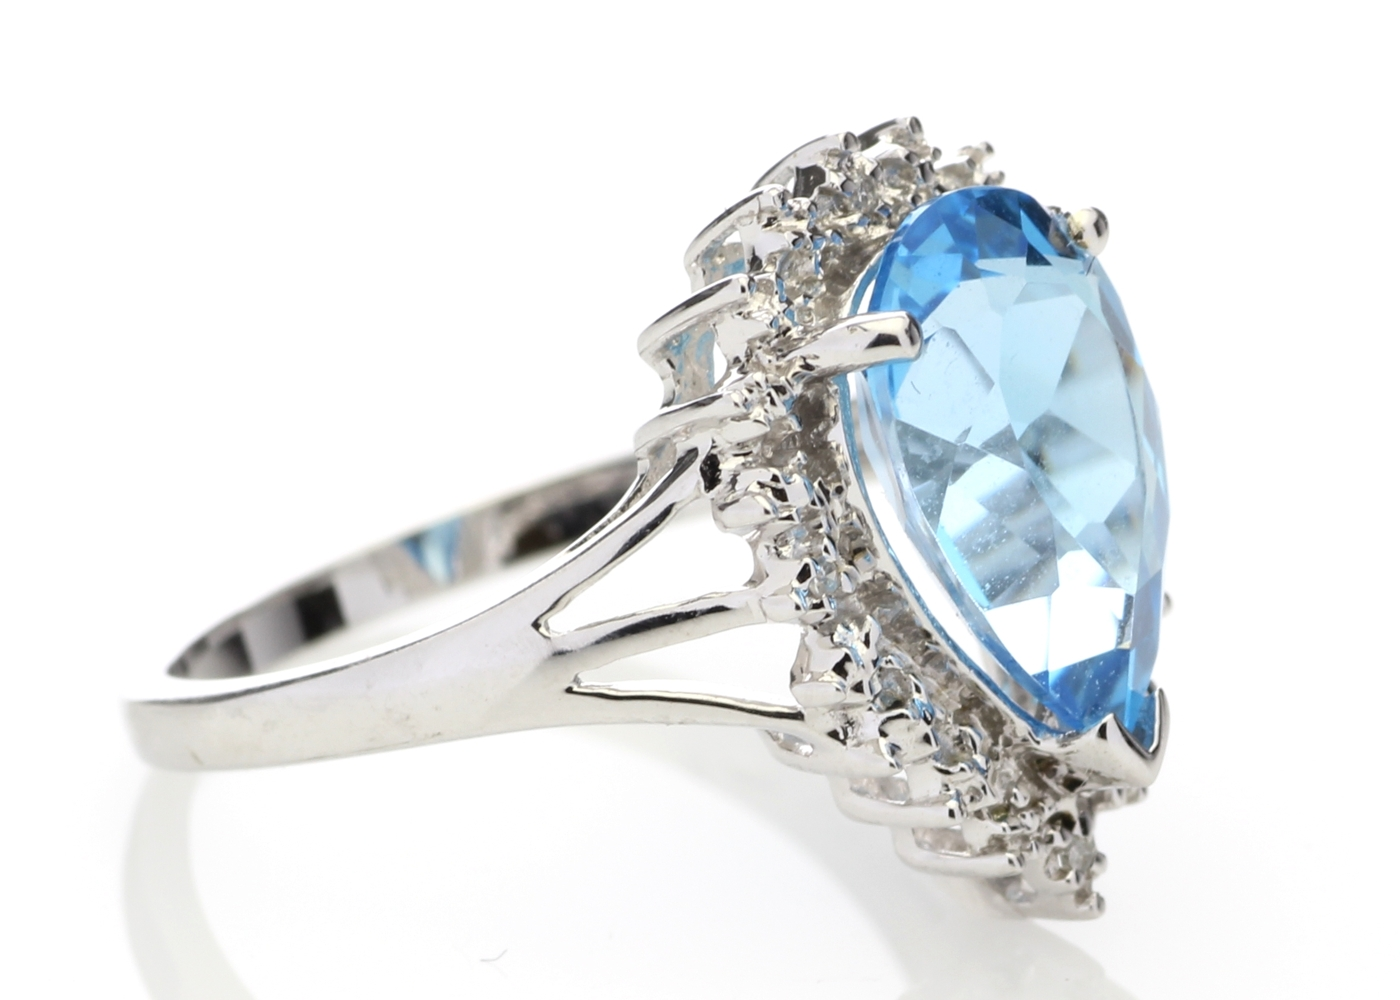 Lot 55 - 9ct White Gold Diamond And Blue Topaz Ring